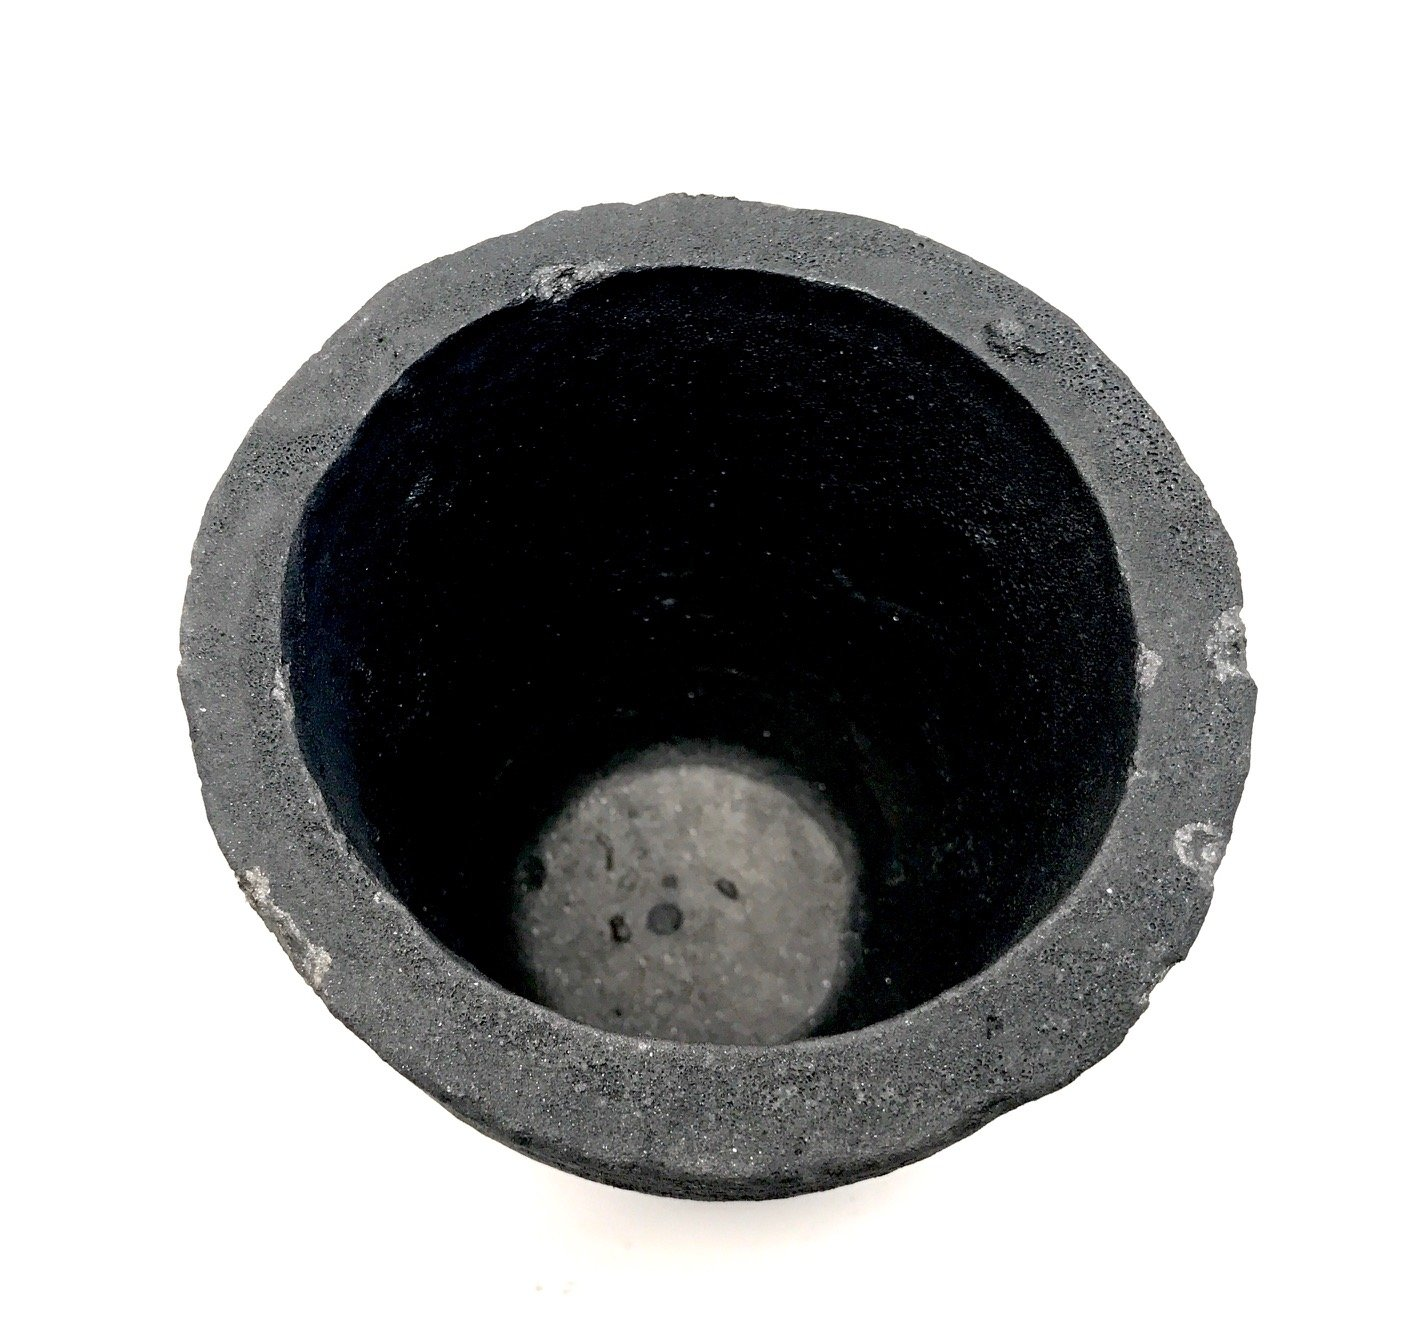 Cast Masters USA - 5 Kg Foundry Clay Graphite Crucible Furnace Torch Melting Casting Refining Gold Silver Copper Brass Aluminum